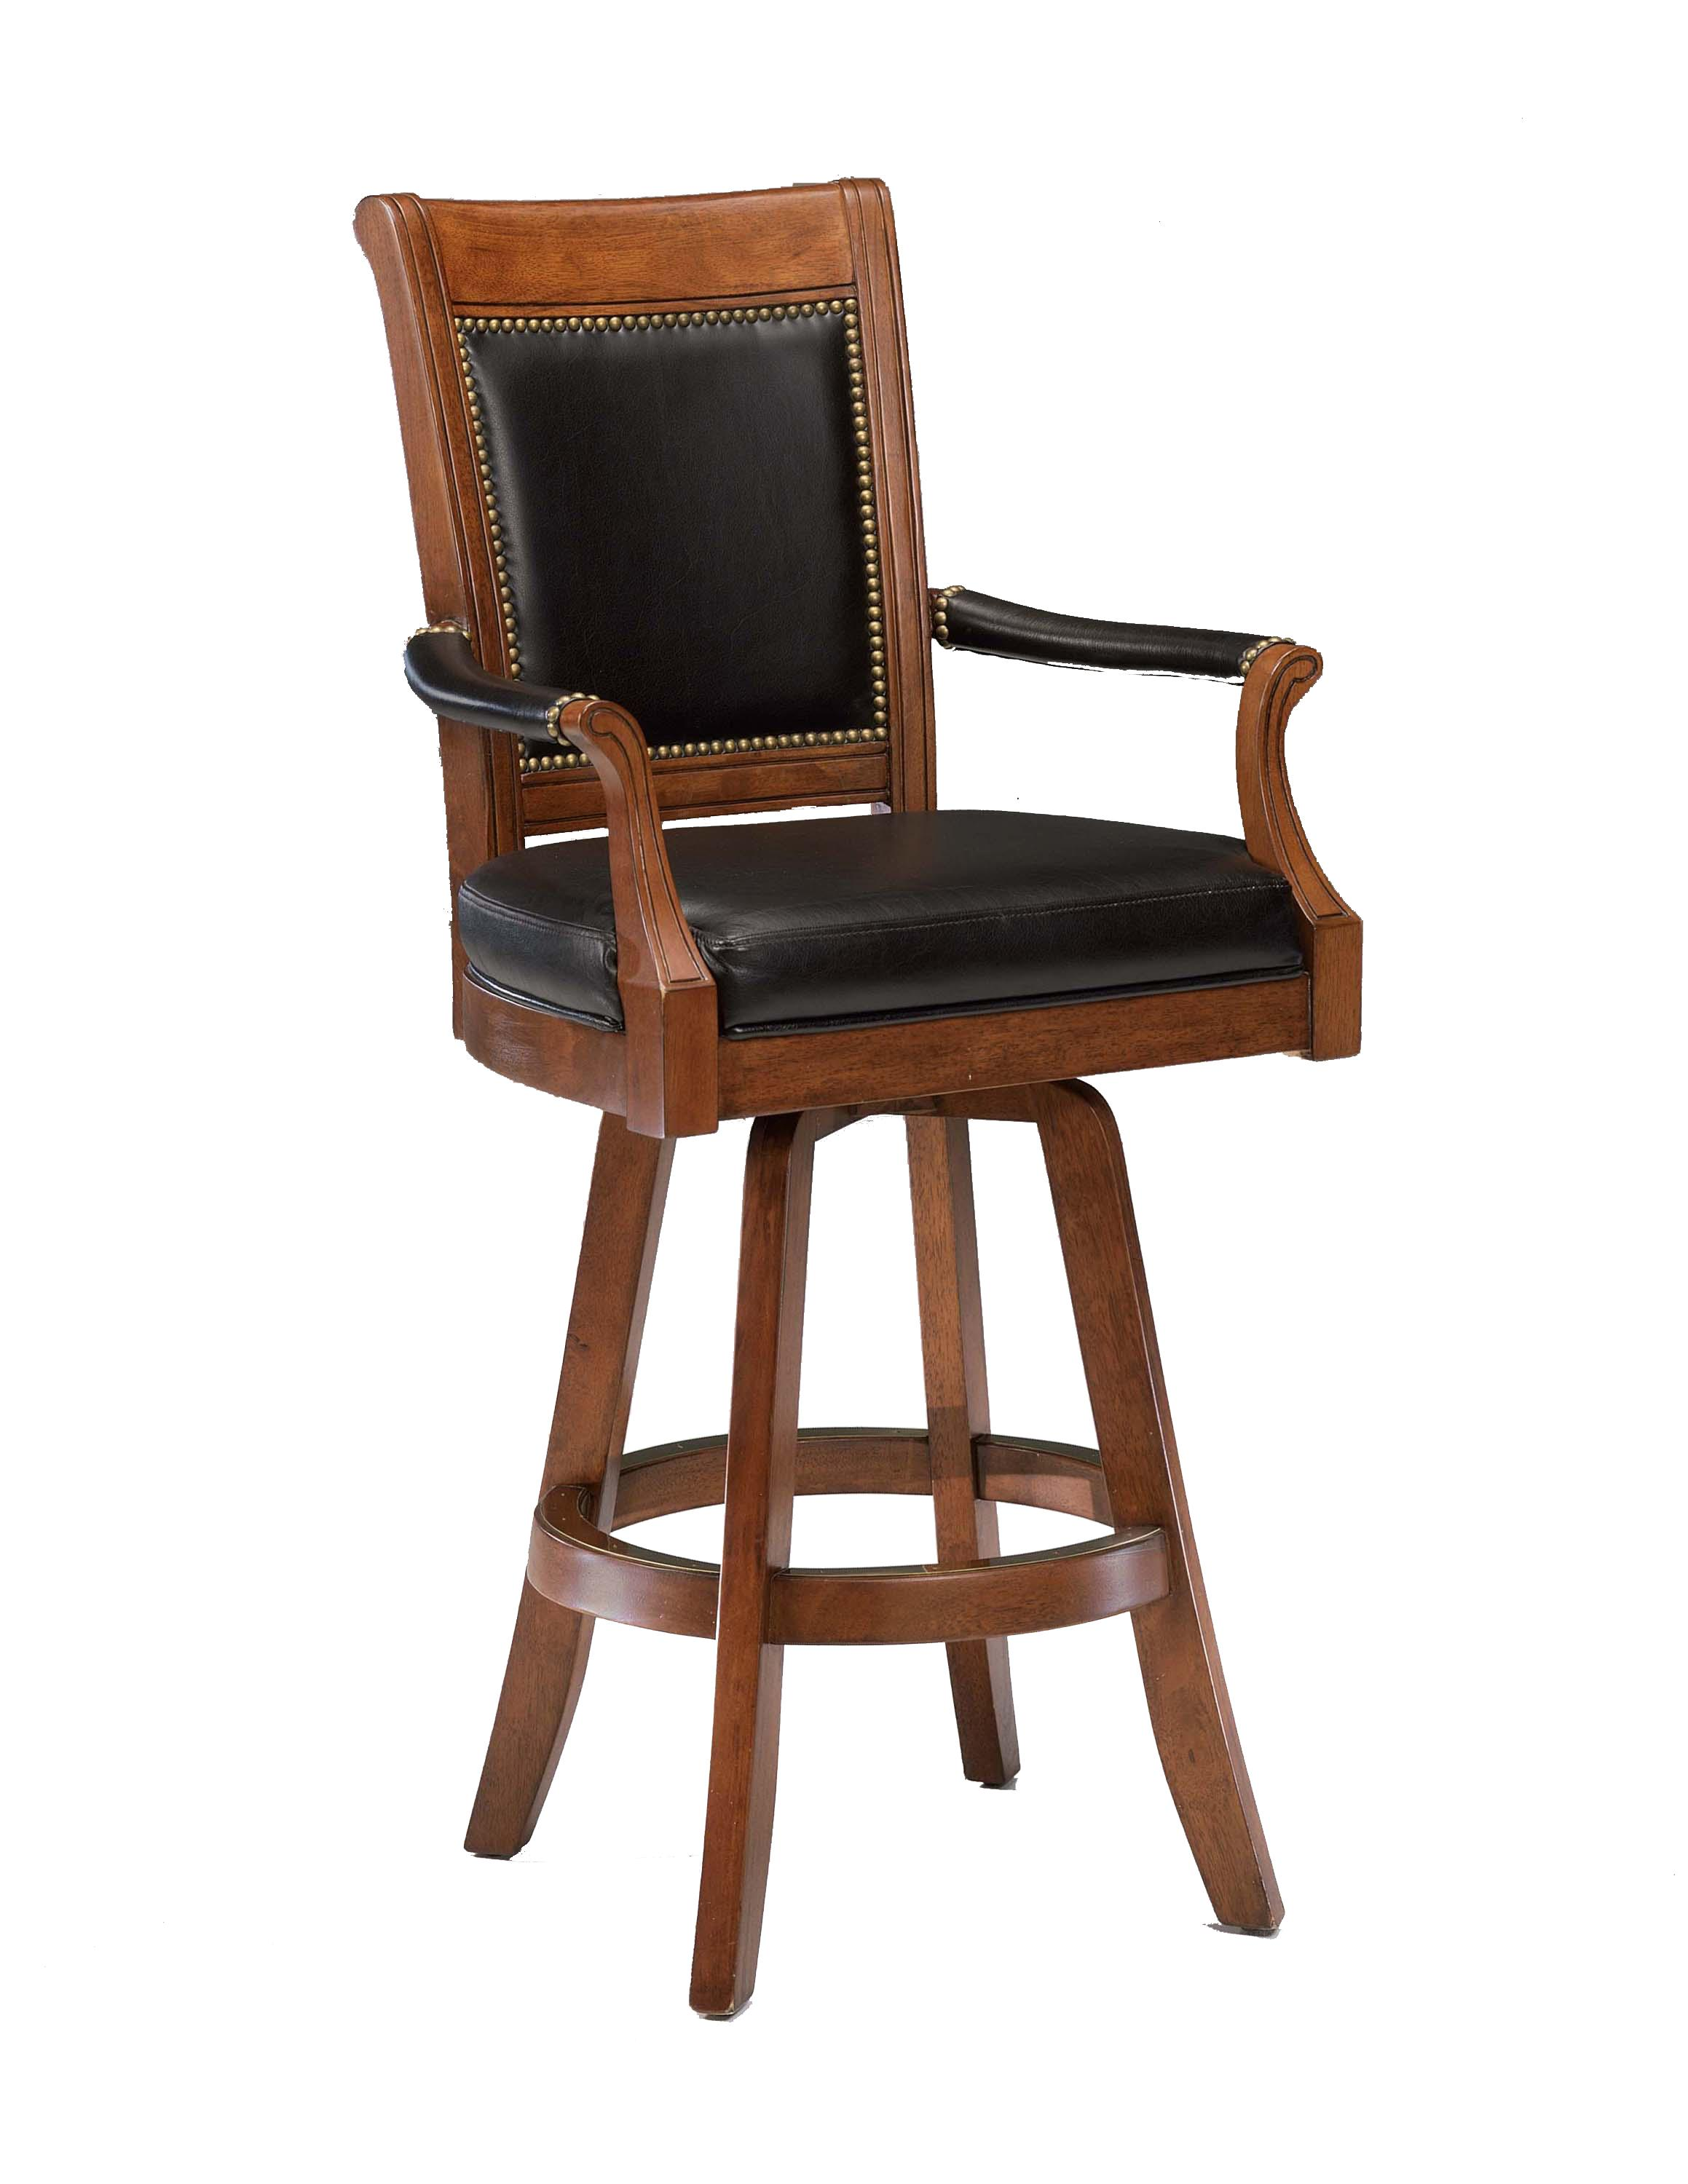 Hillsdale Game Stools & Chairs Kingston Game Swivel Leather Back Barstool - Item Number: 6004-831